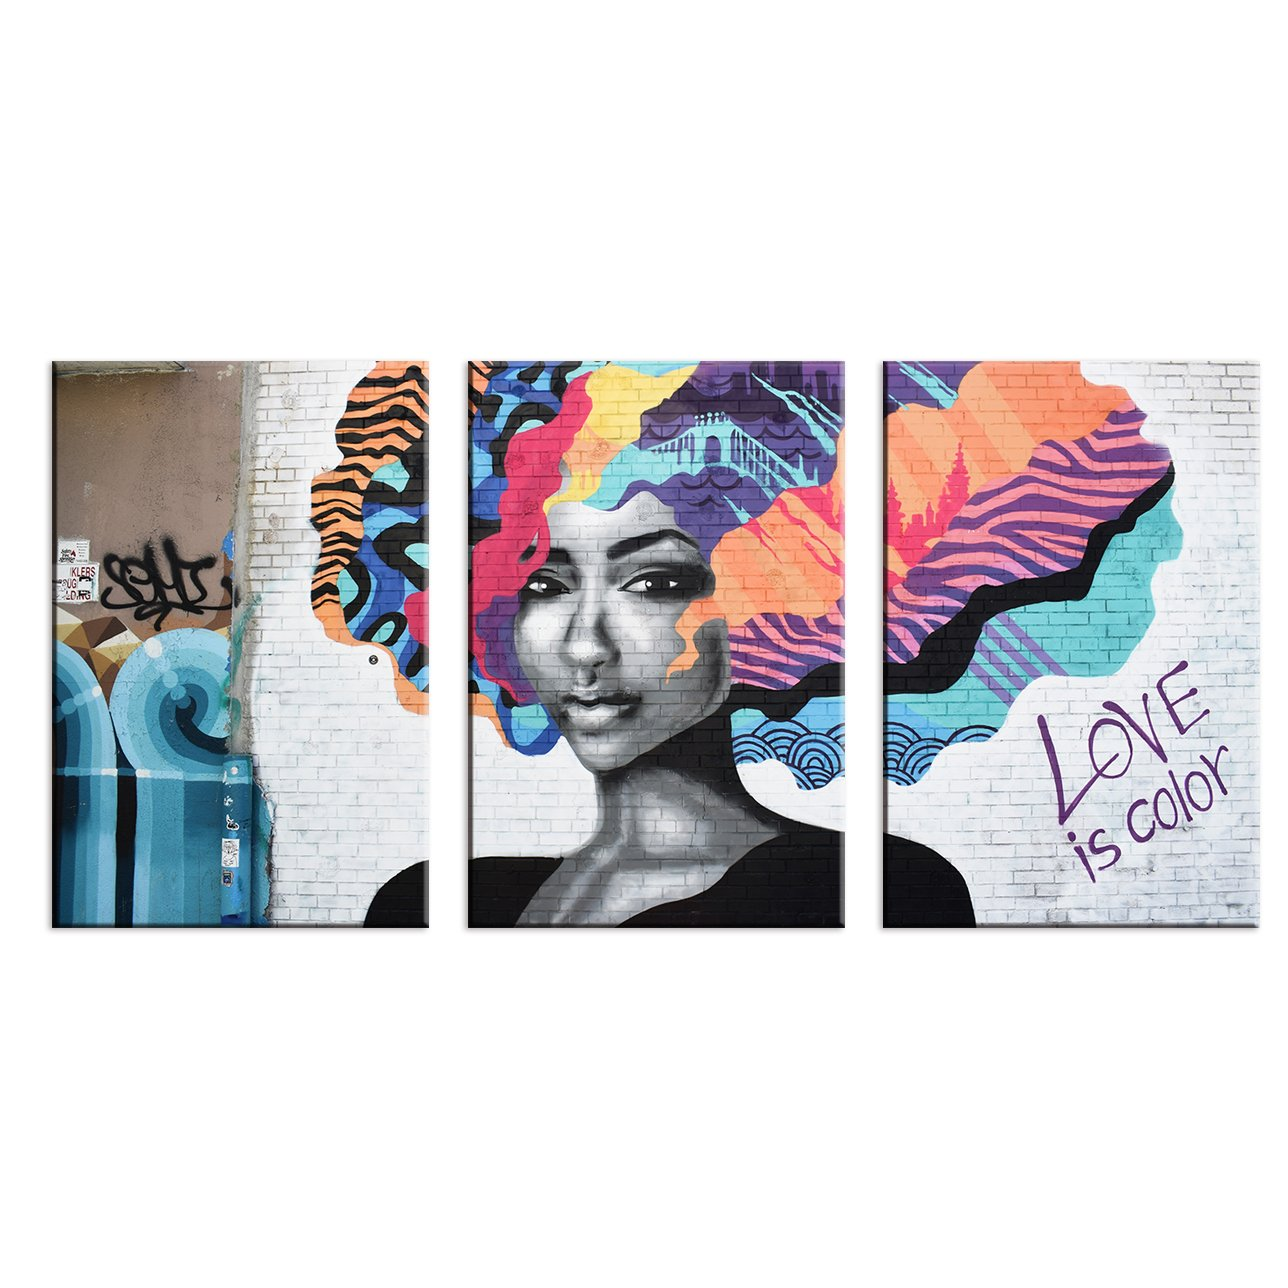 wall26 – 3 Panel Canvas Wall Art – Triptych Street Graffiti Series – Love is Color – Giclee Print Gallery Wrap Modern Home Decor Ready to Hang – 16 x24 x 3 Panels